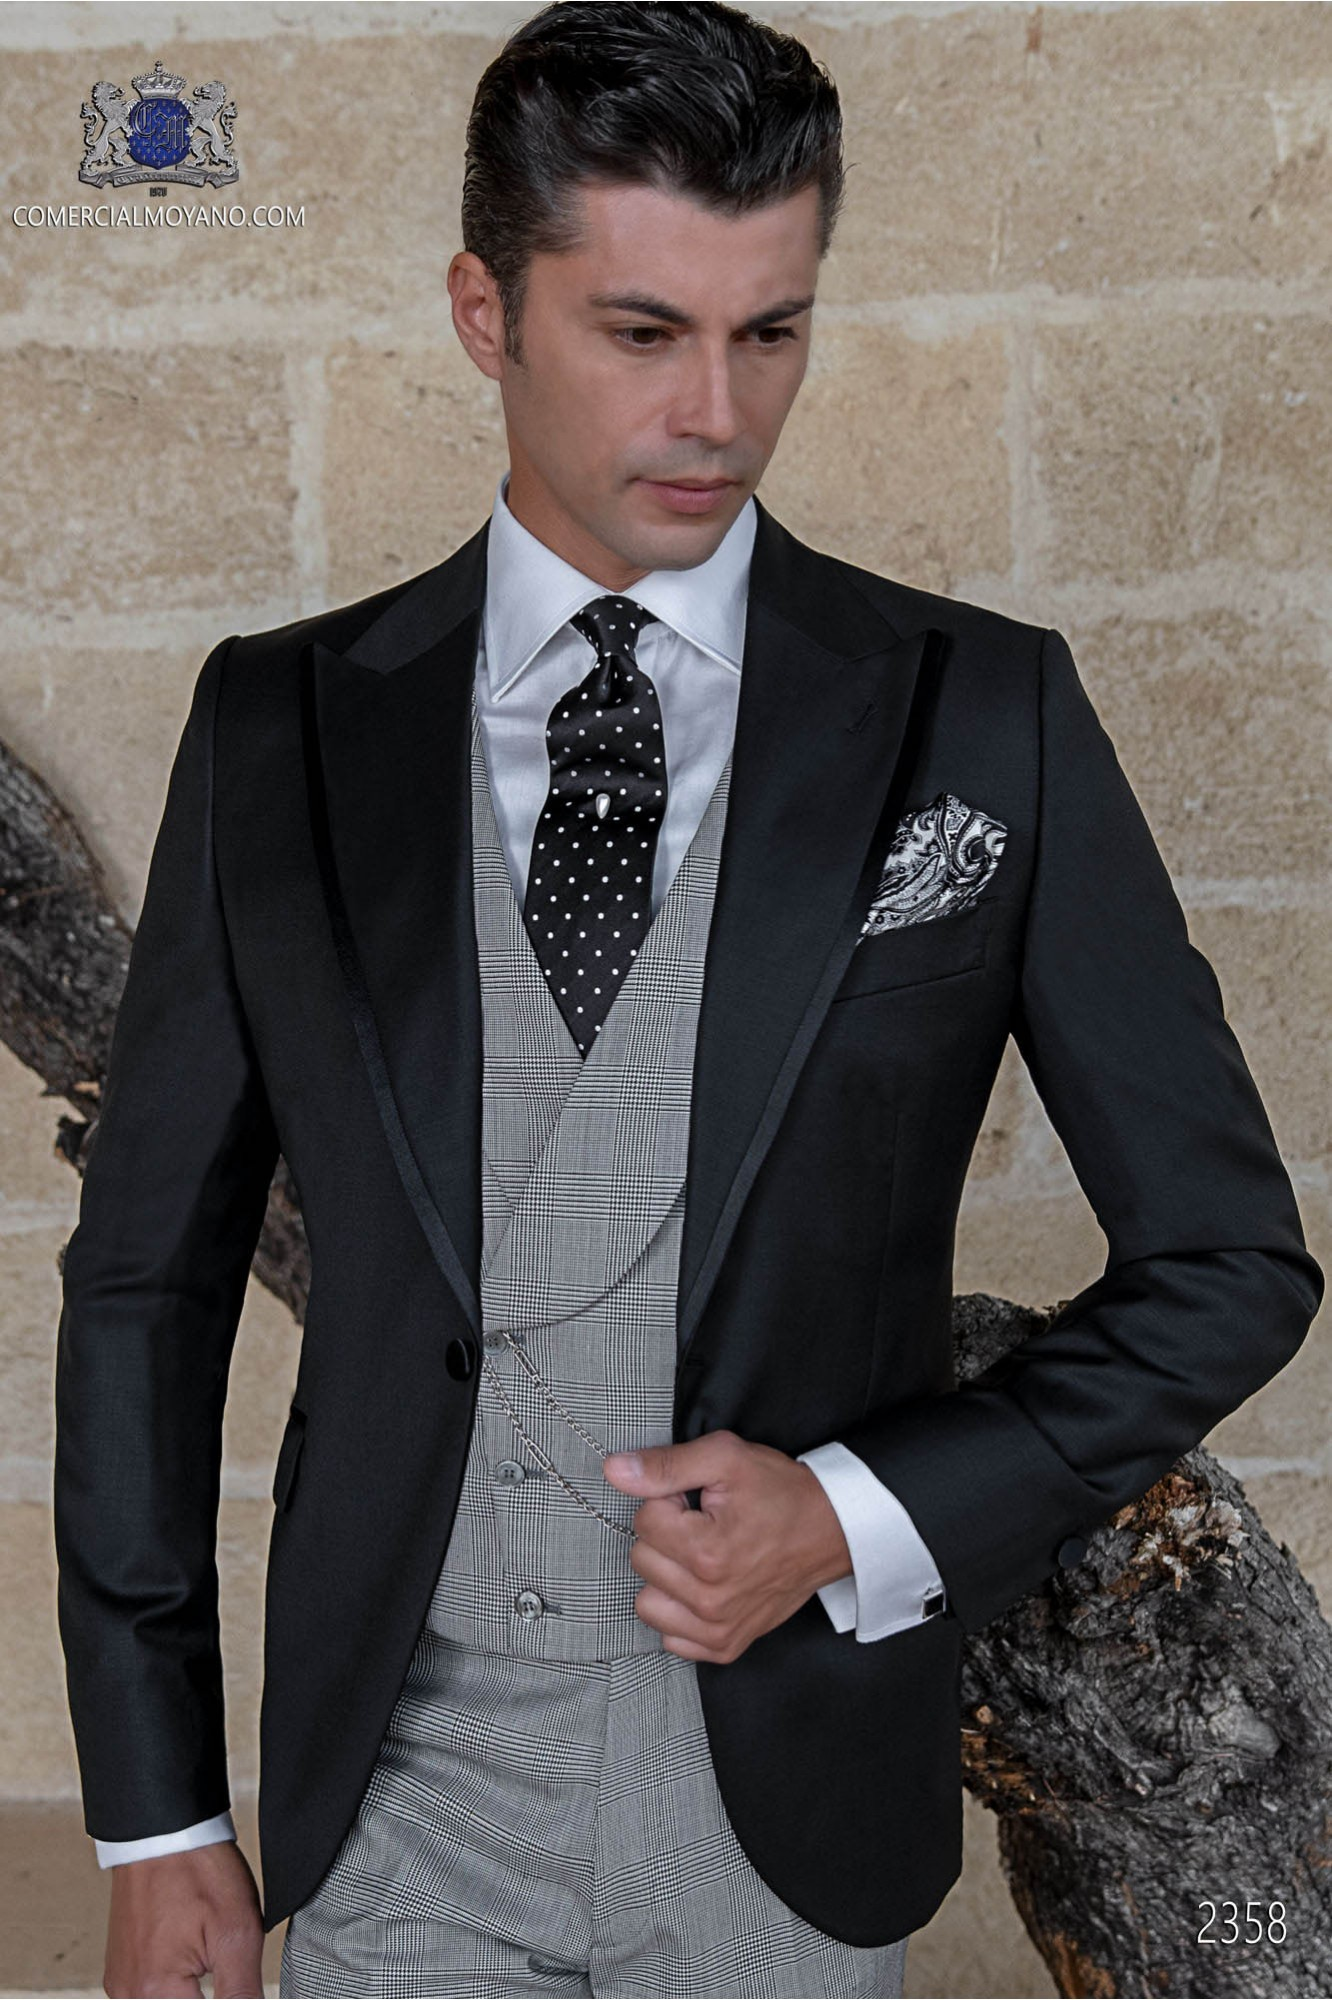 Italian bespoke black wedding suit coordinated with Prince of Wales trousers